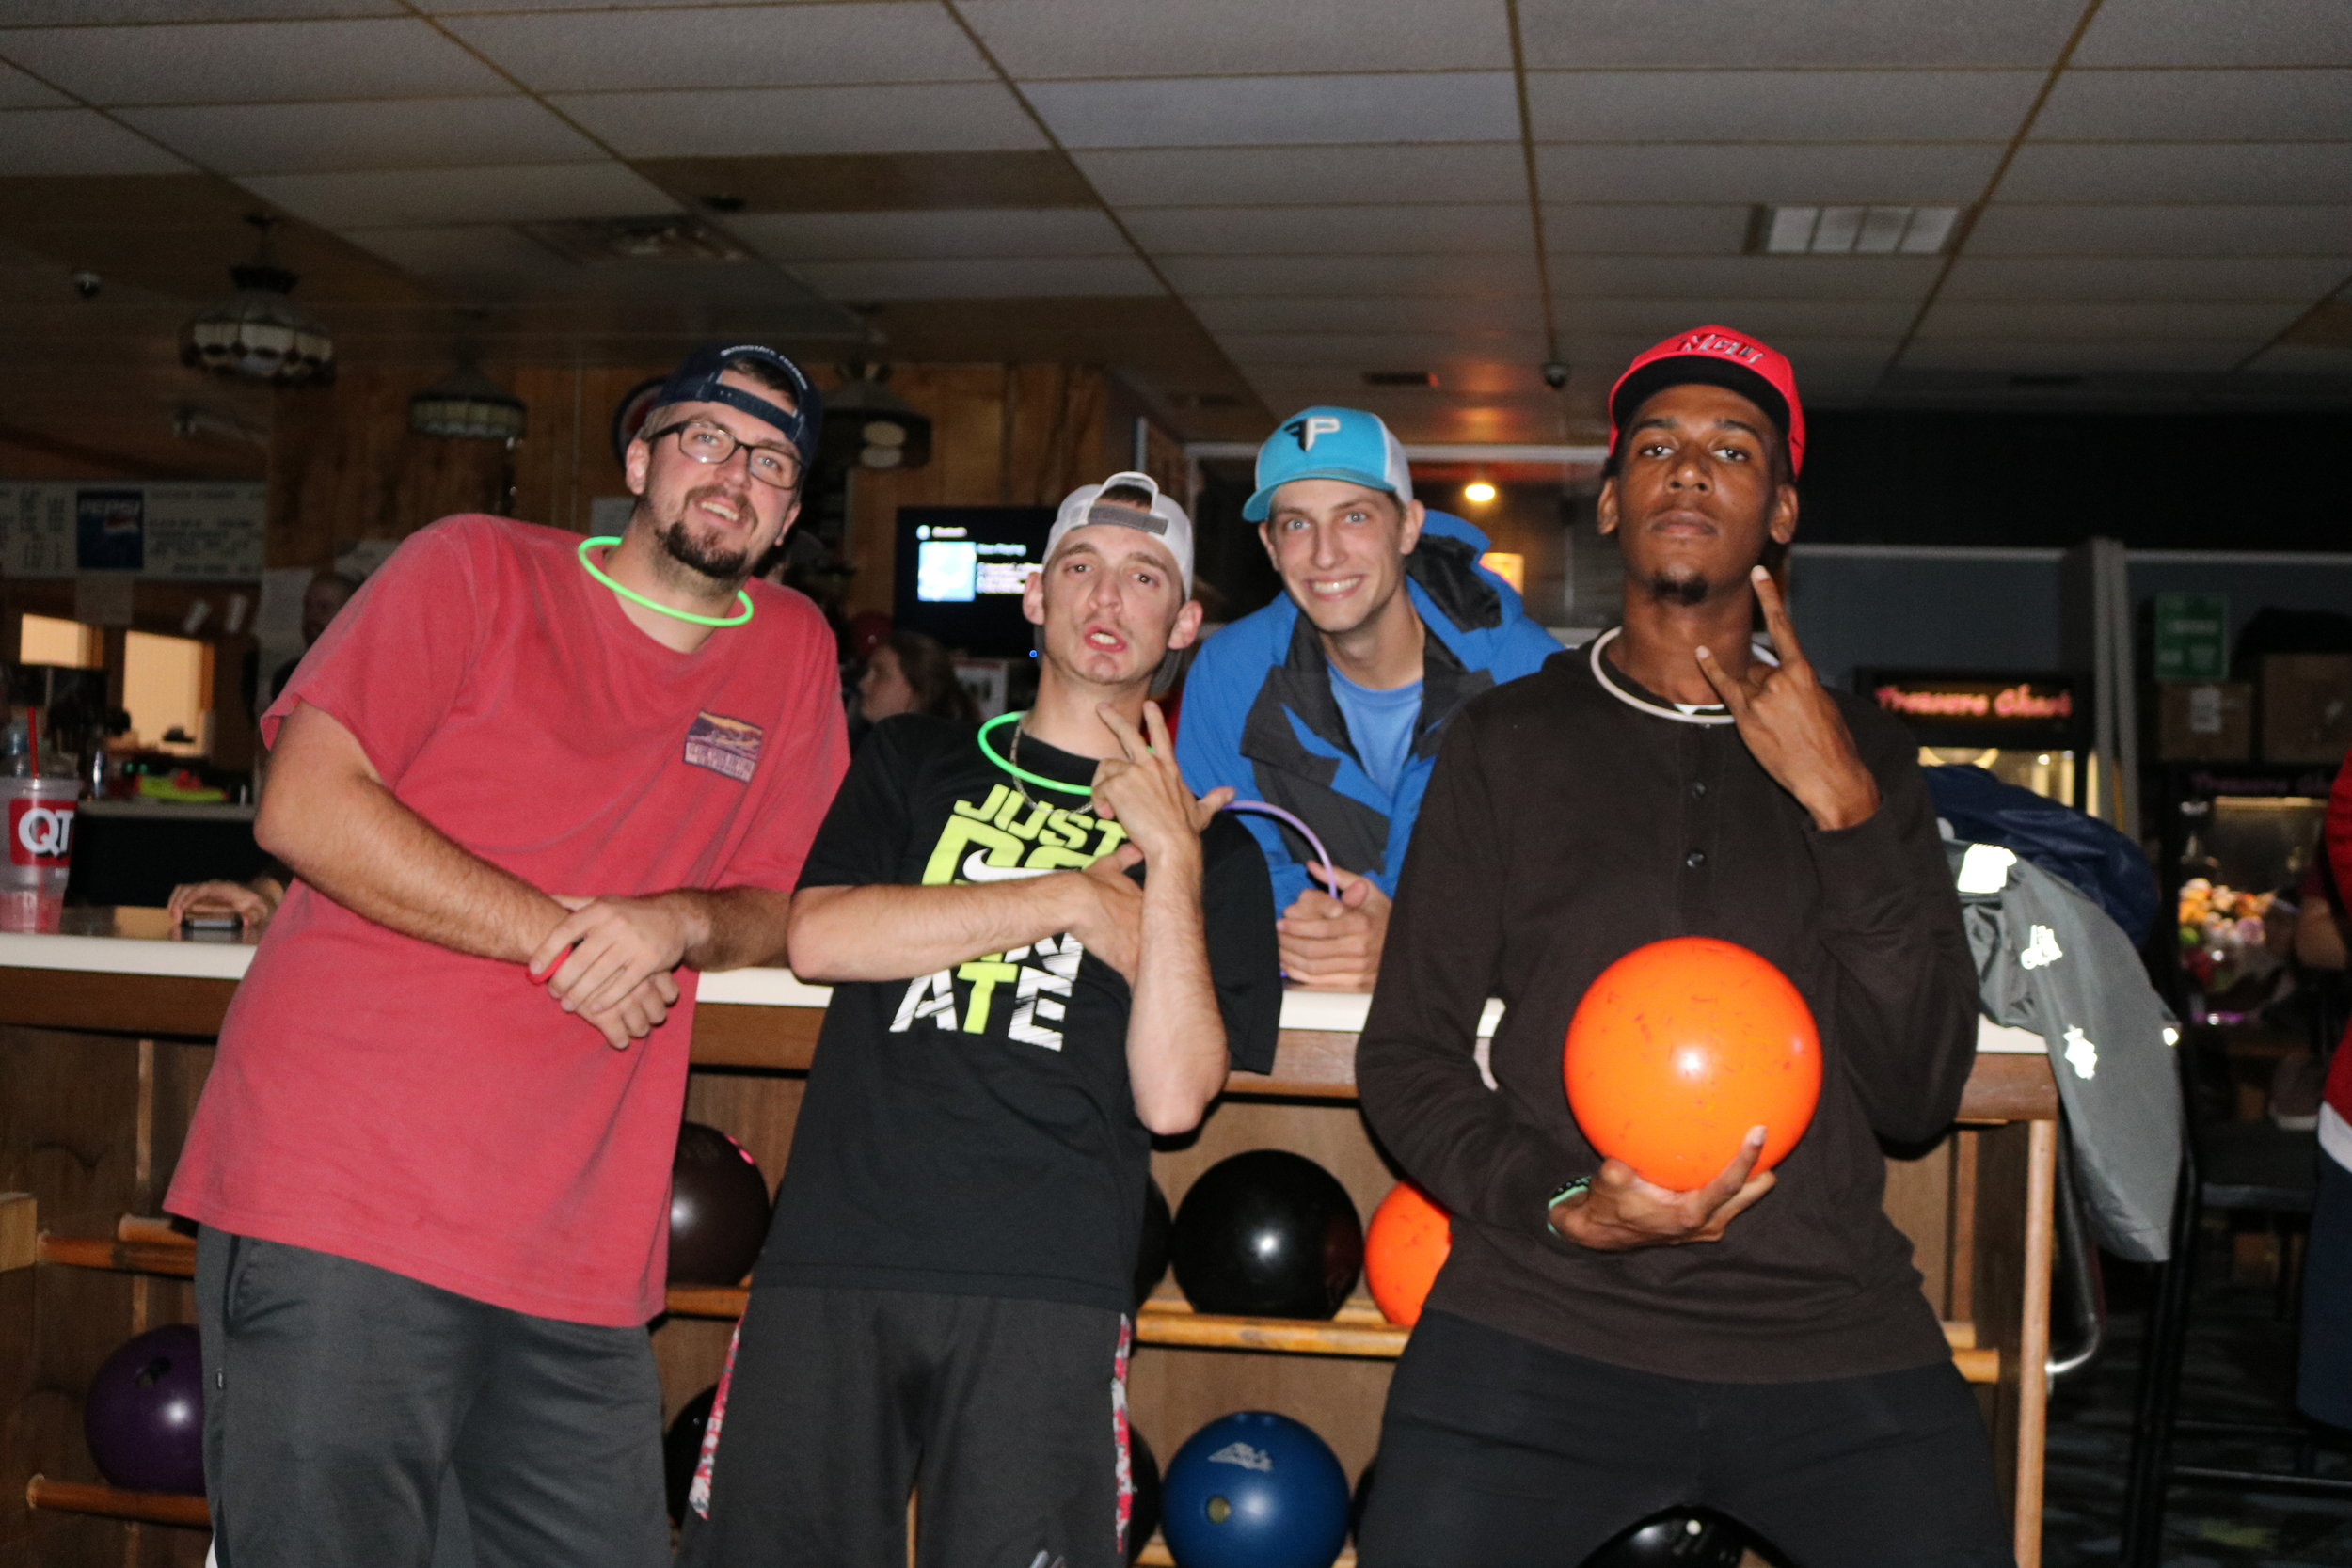 Seniors, Bryce Allen, Josh Bradley and Adam Daniel are all excited to bowl for Sport Management while sophomore, Zion Dendy is ready to compete with SGA on Wednesday night at Peach Bowl Lanes for free.